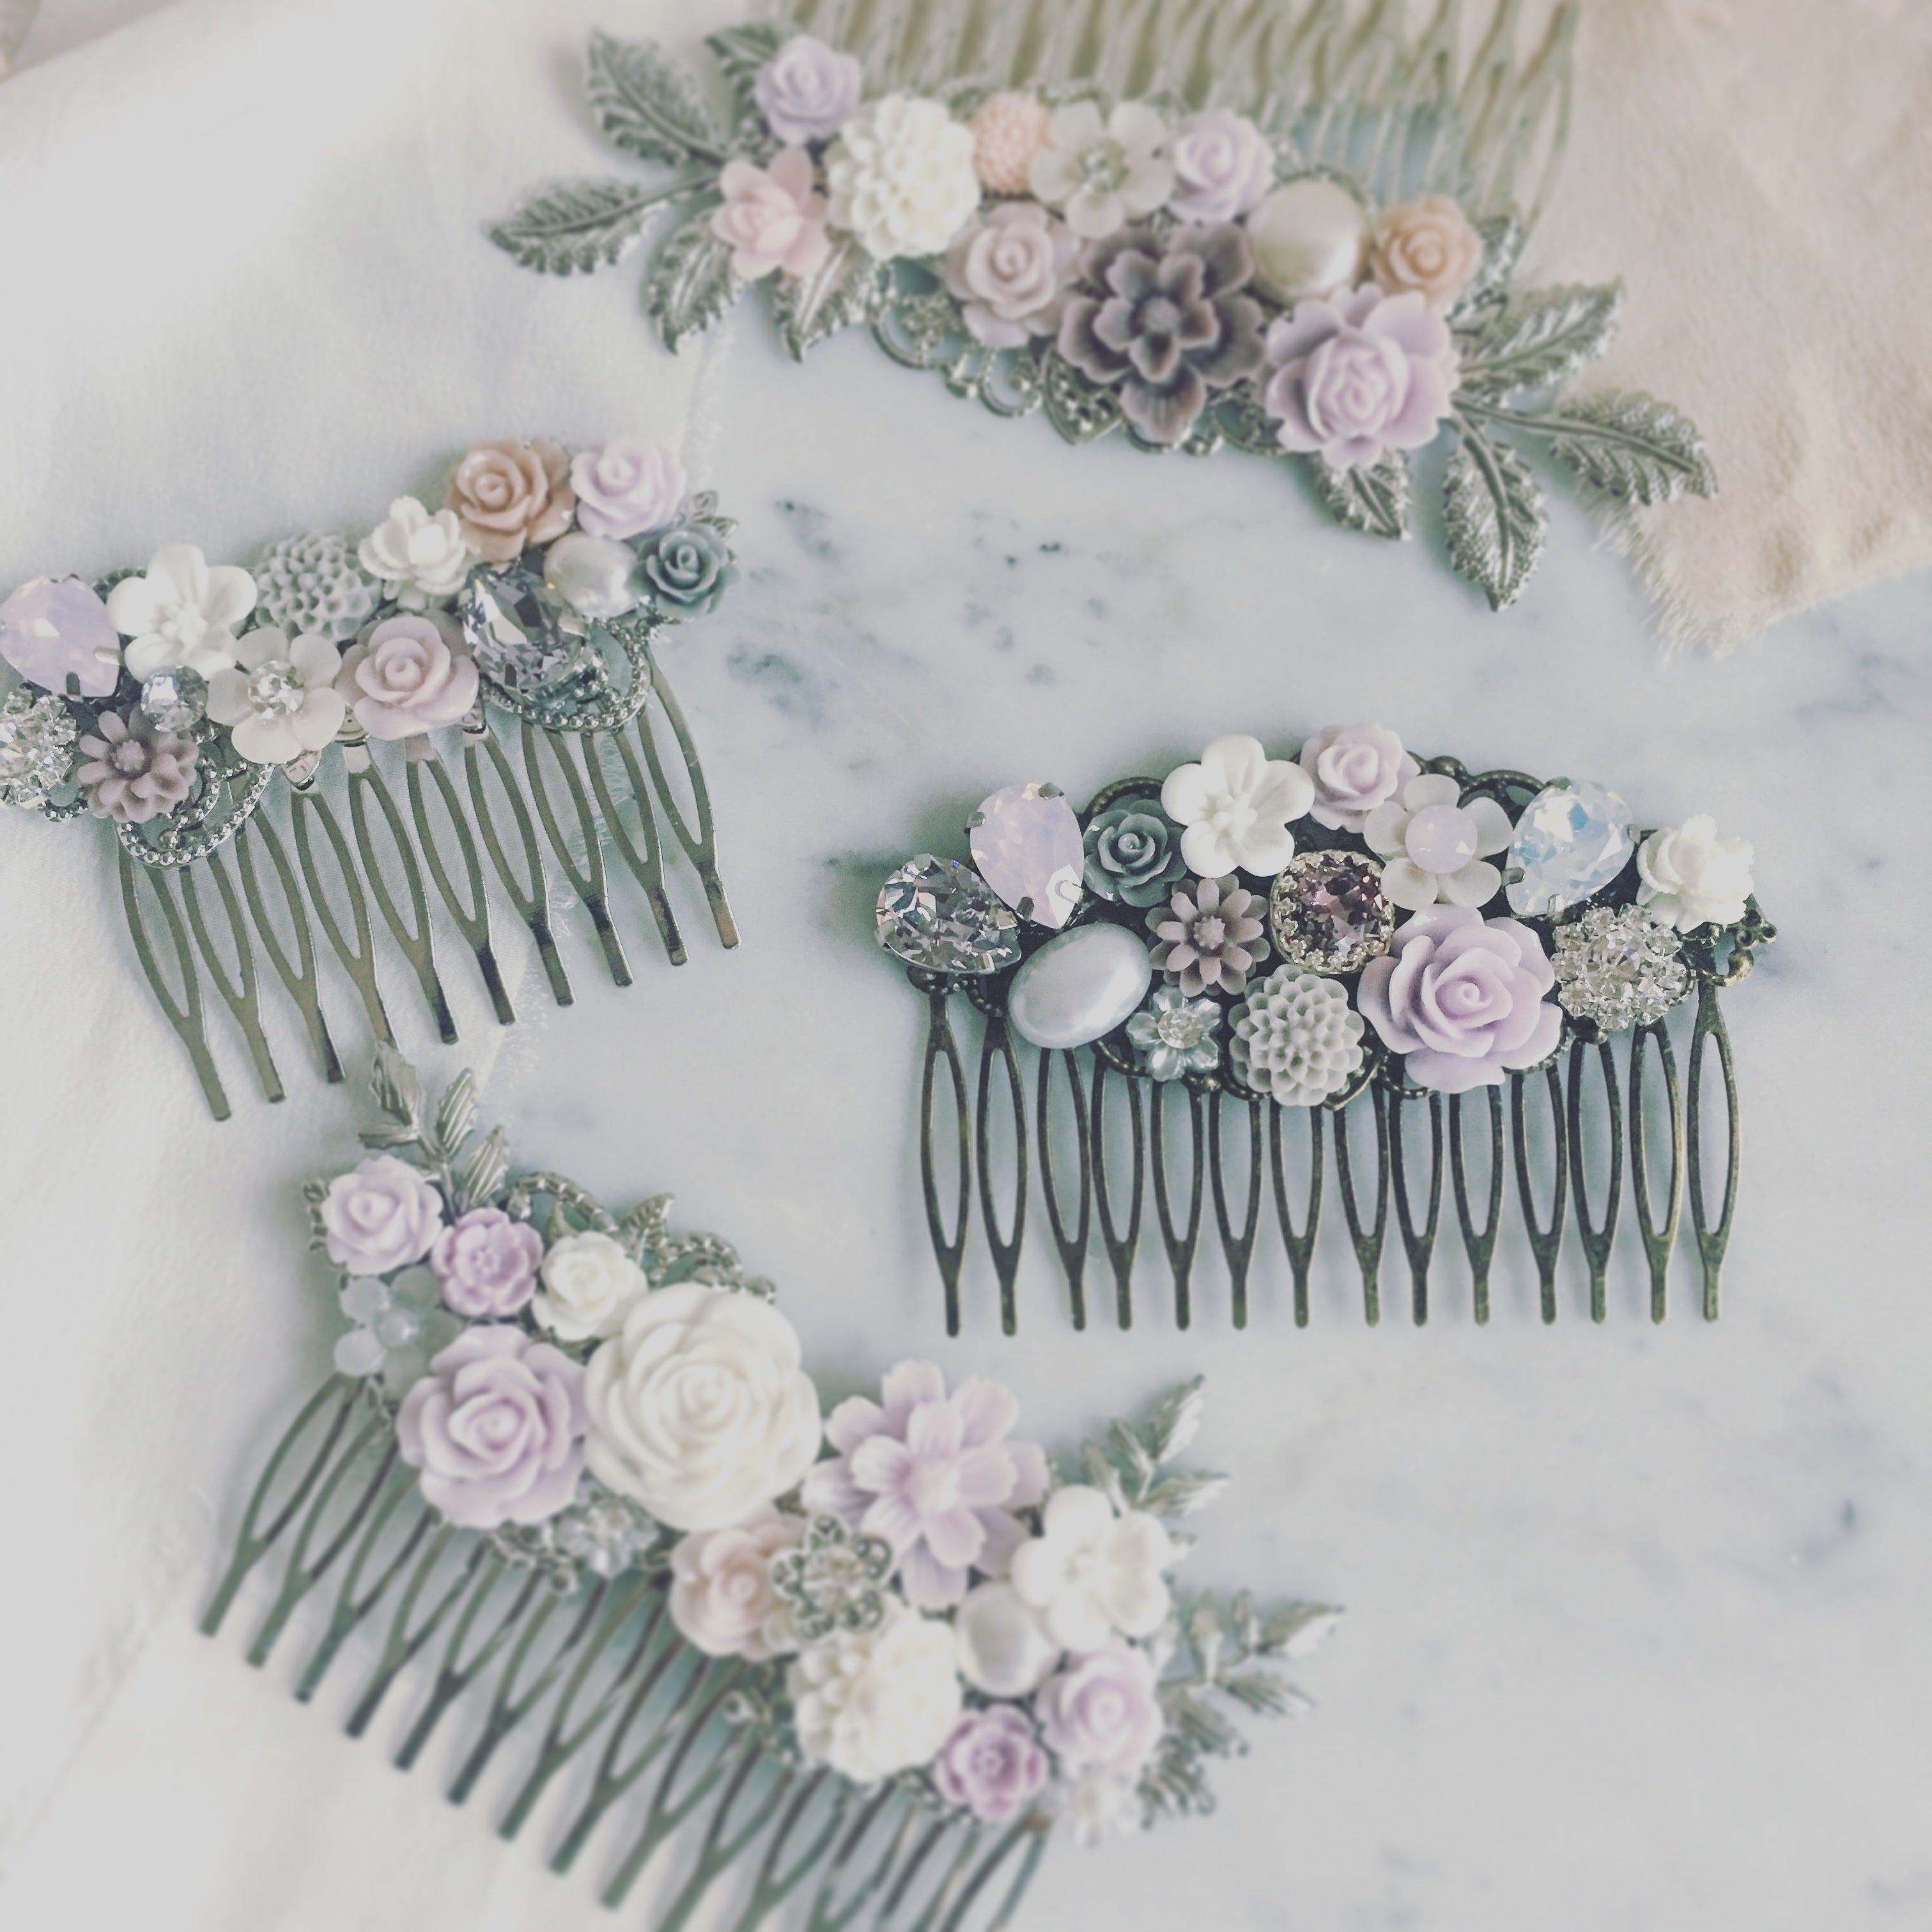 Mayfair - Misty Dreamy Wedding Comb Romantic Bridal Hair Accessories